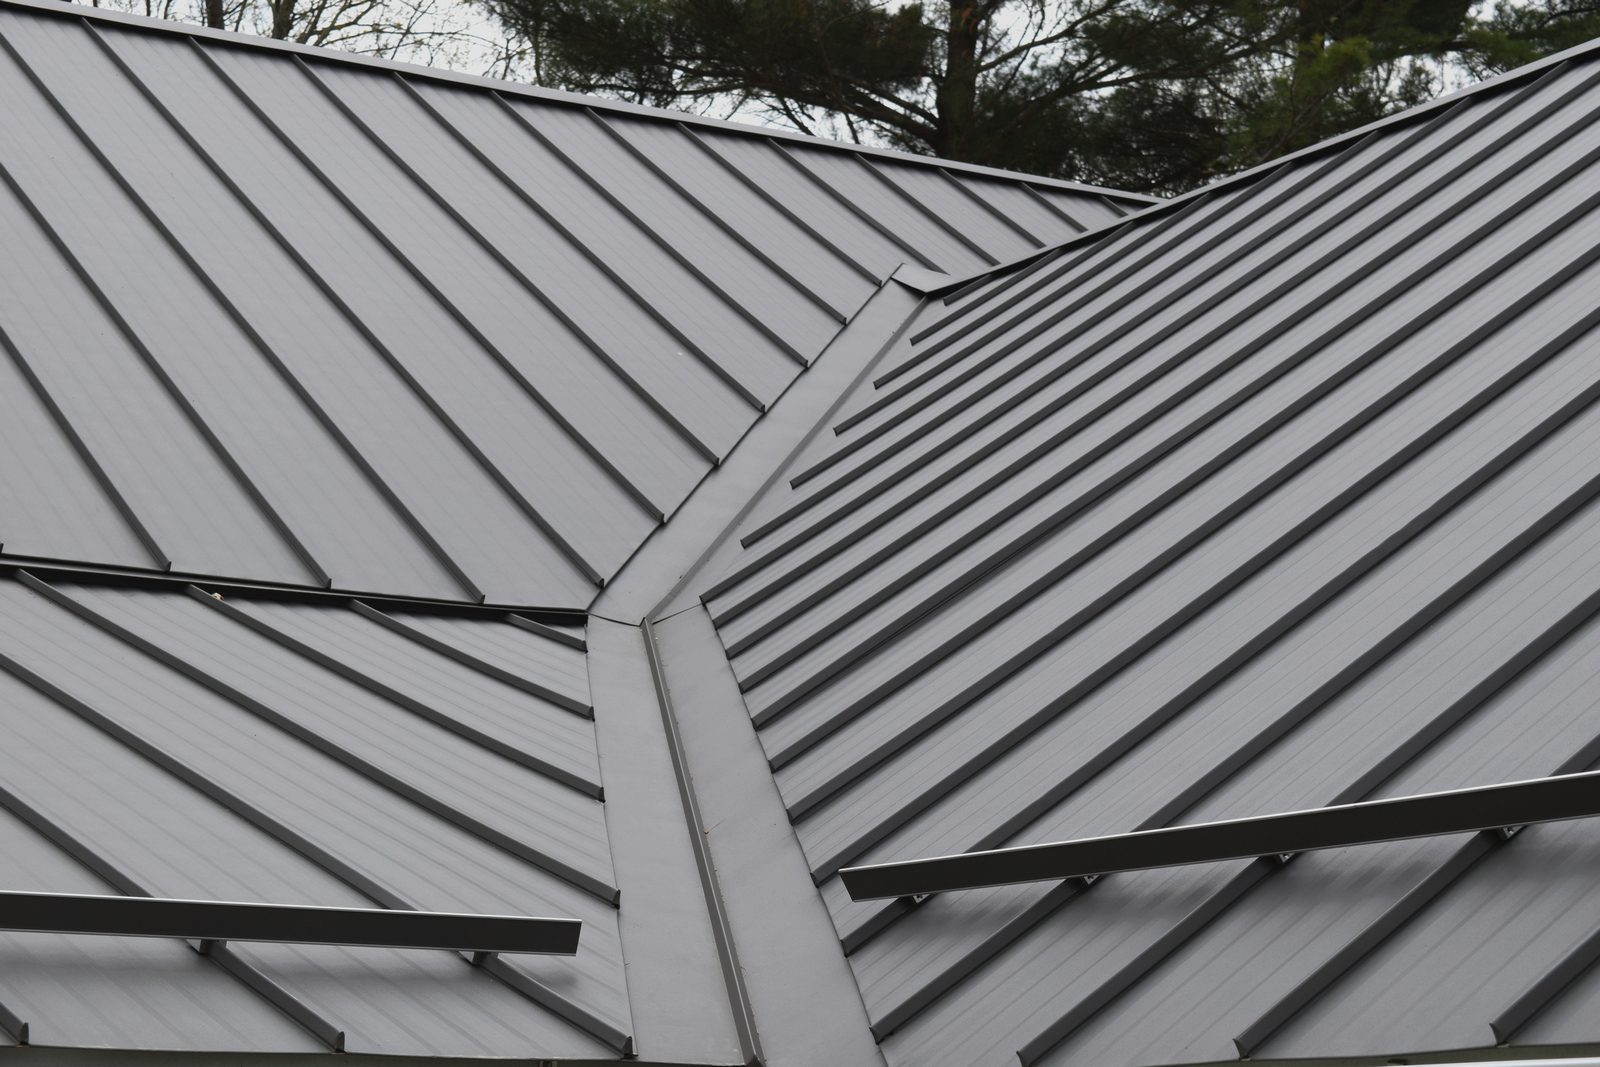 Metal Roofing Impacts Home Value